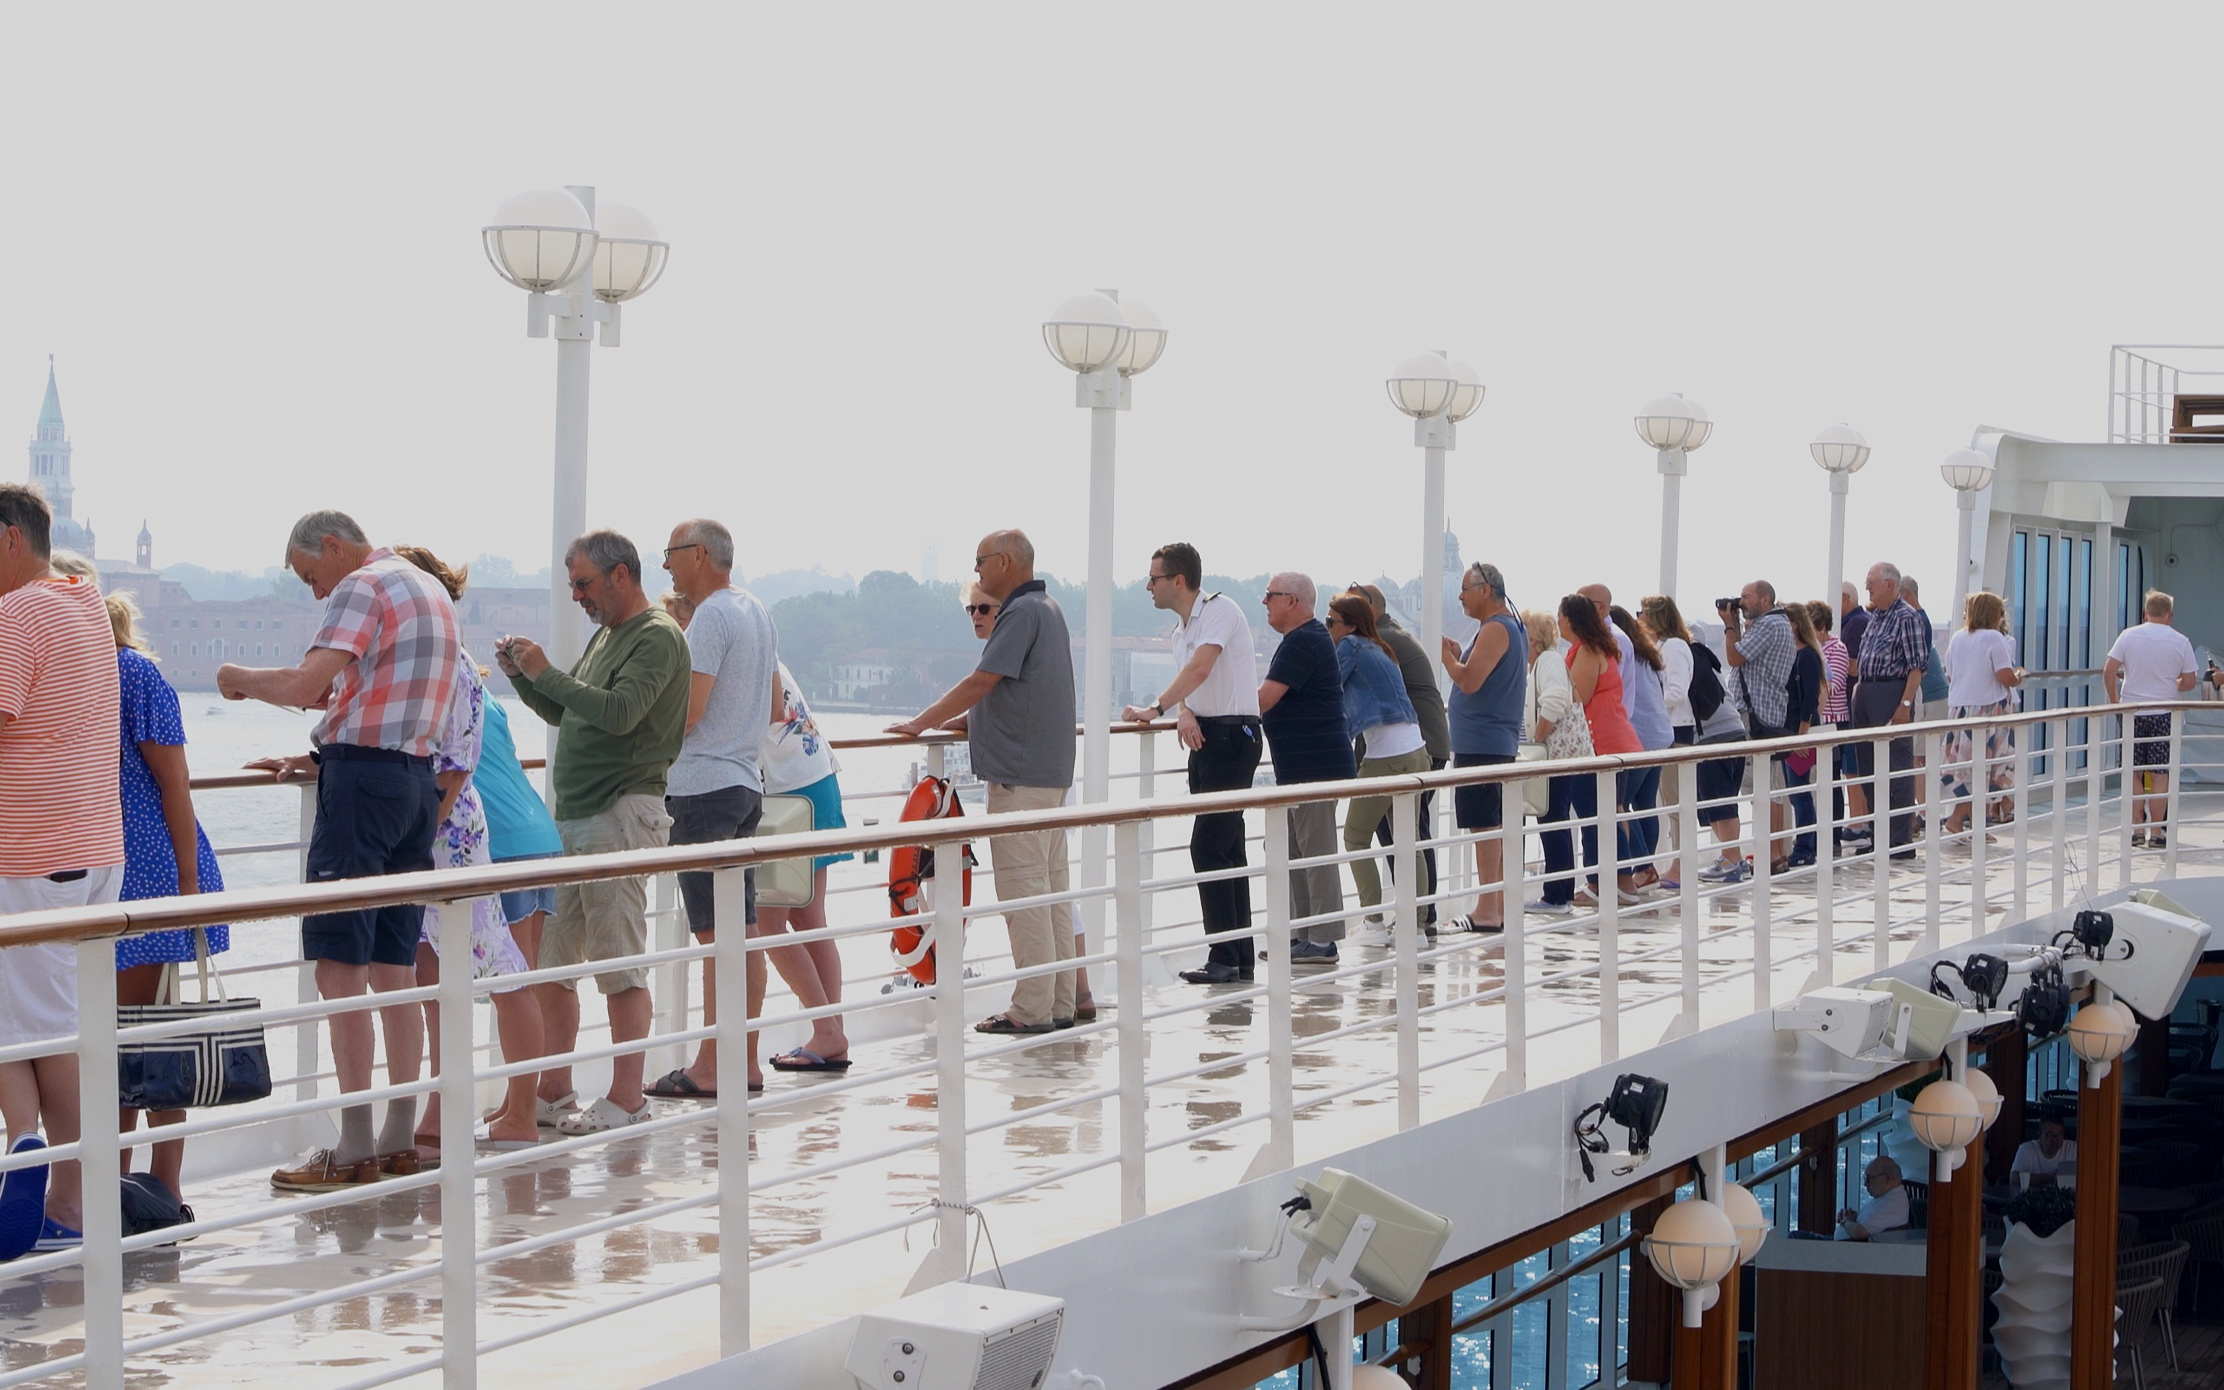 Guests on the open decks for sail into Venice.